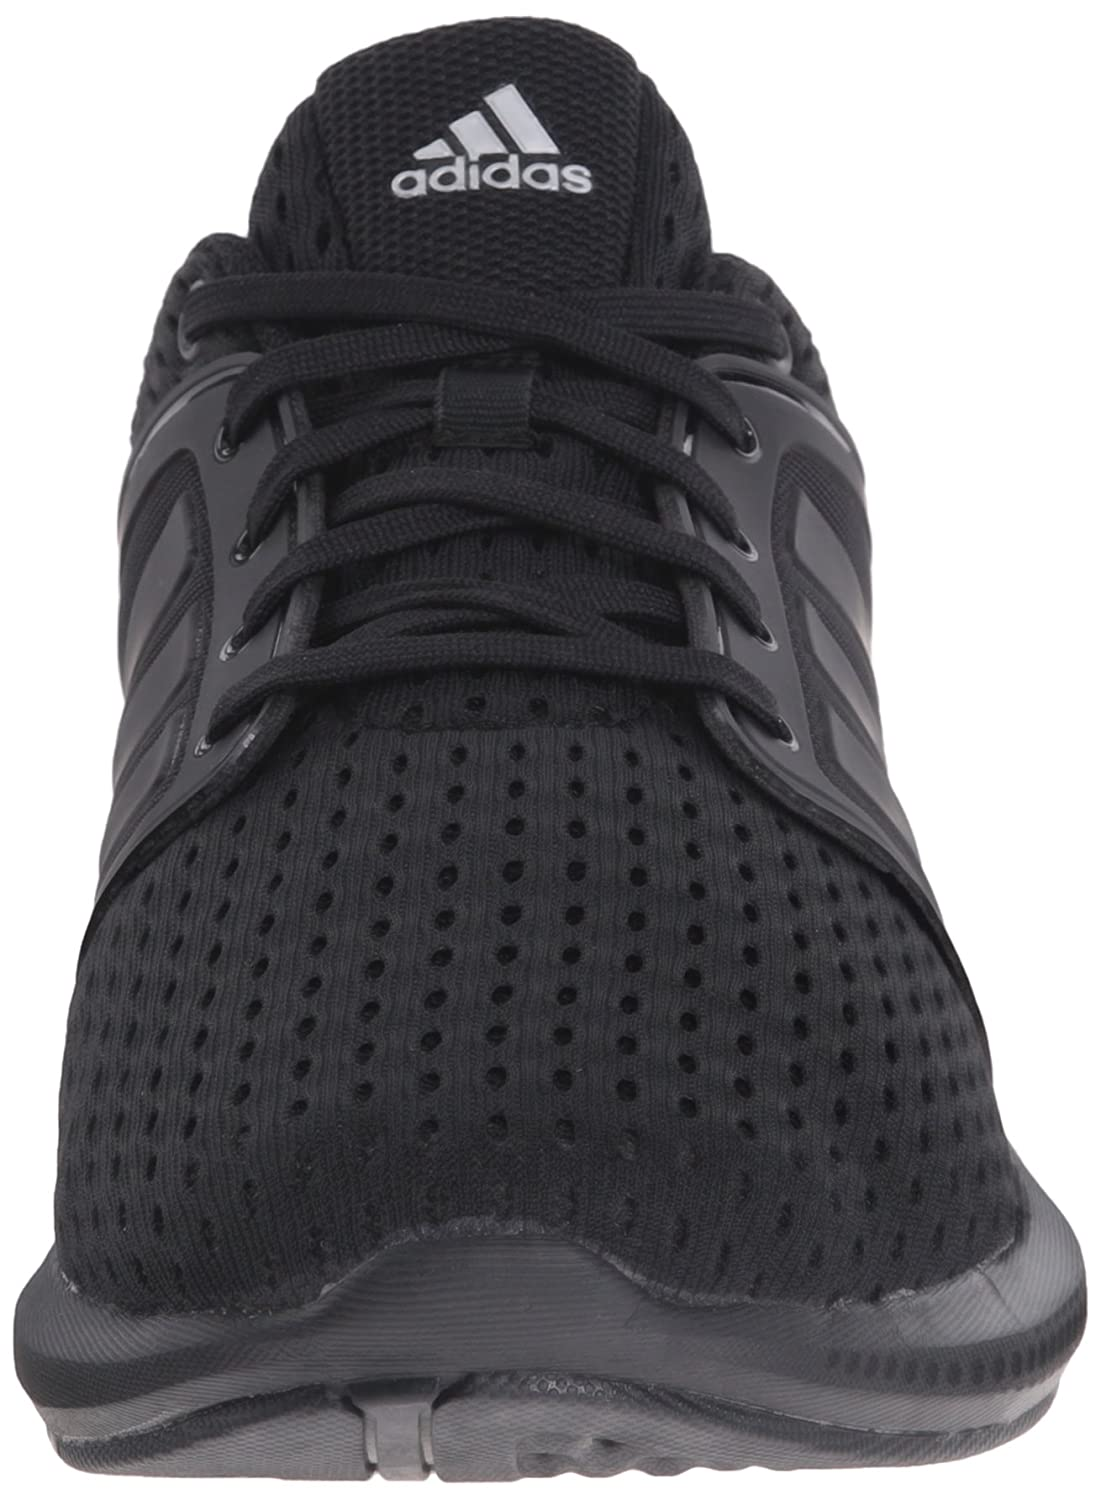 666631c3e8d10 release date view 360 adidas energy boost volt black 24596 d52f8  greece  amazon adidas performance mens solar boost m running shoe road running  1534c 50552